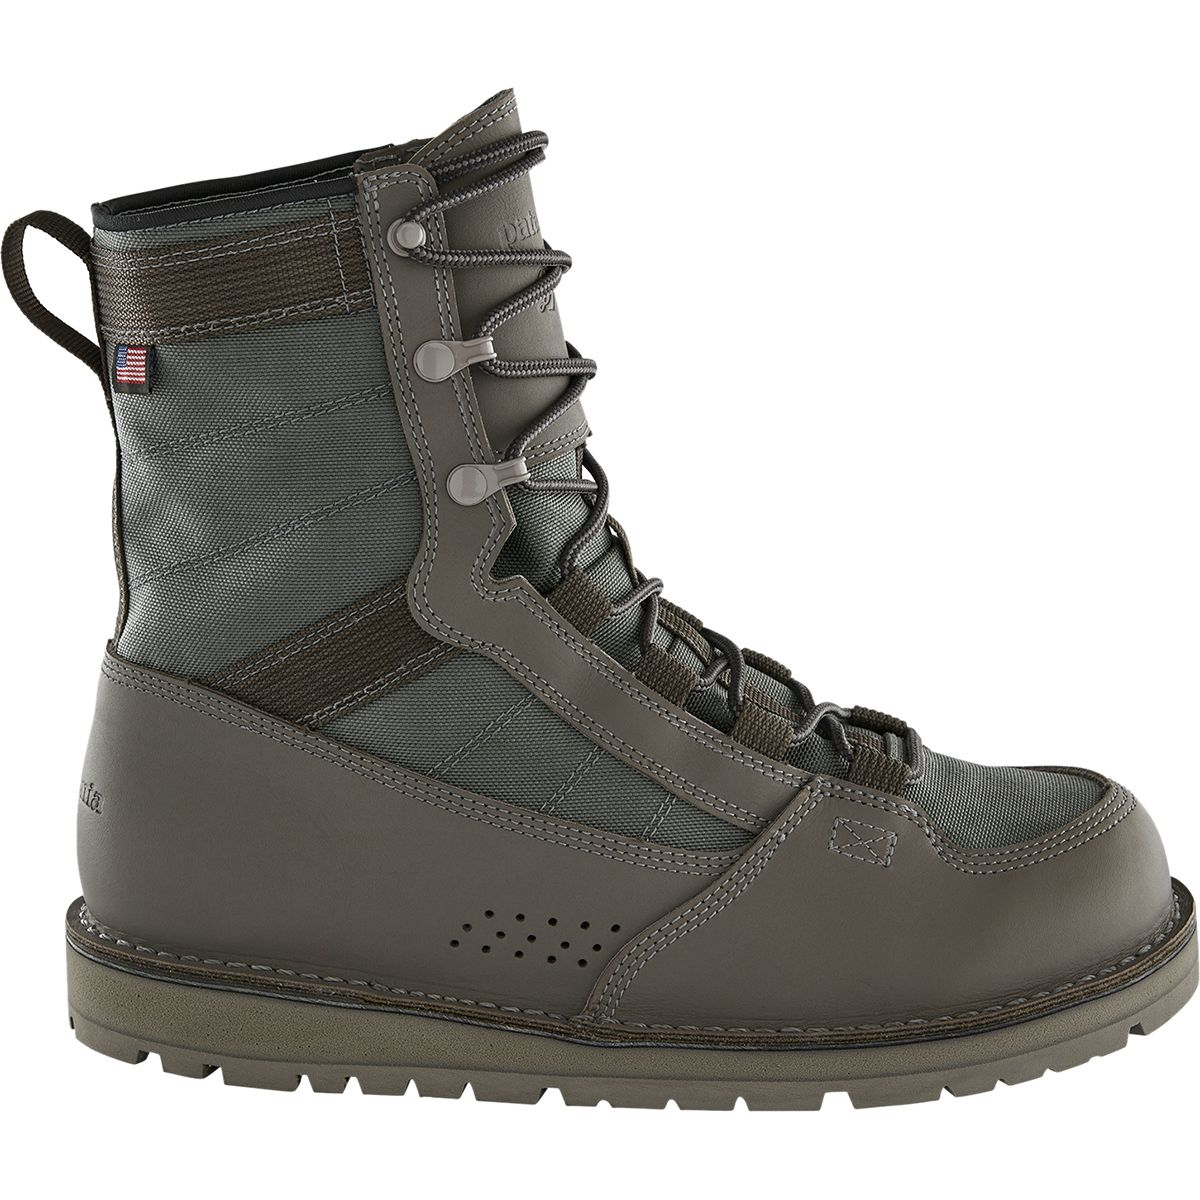 photo: Patagonia River Salt Wading Boots (Built By Danner) wading boots